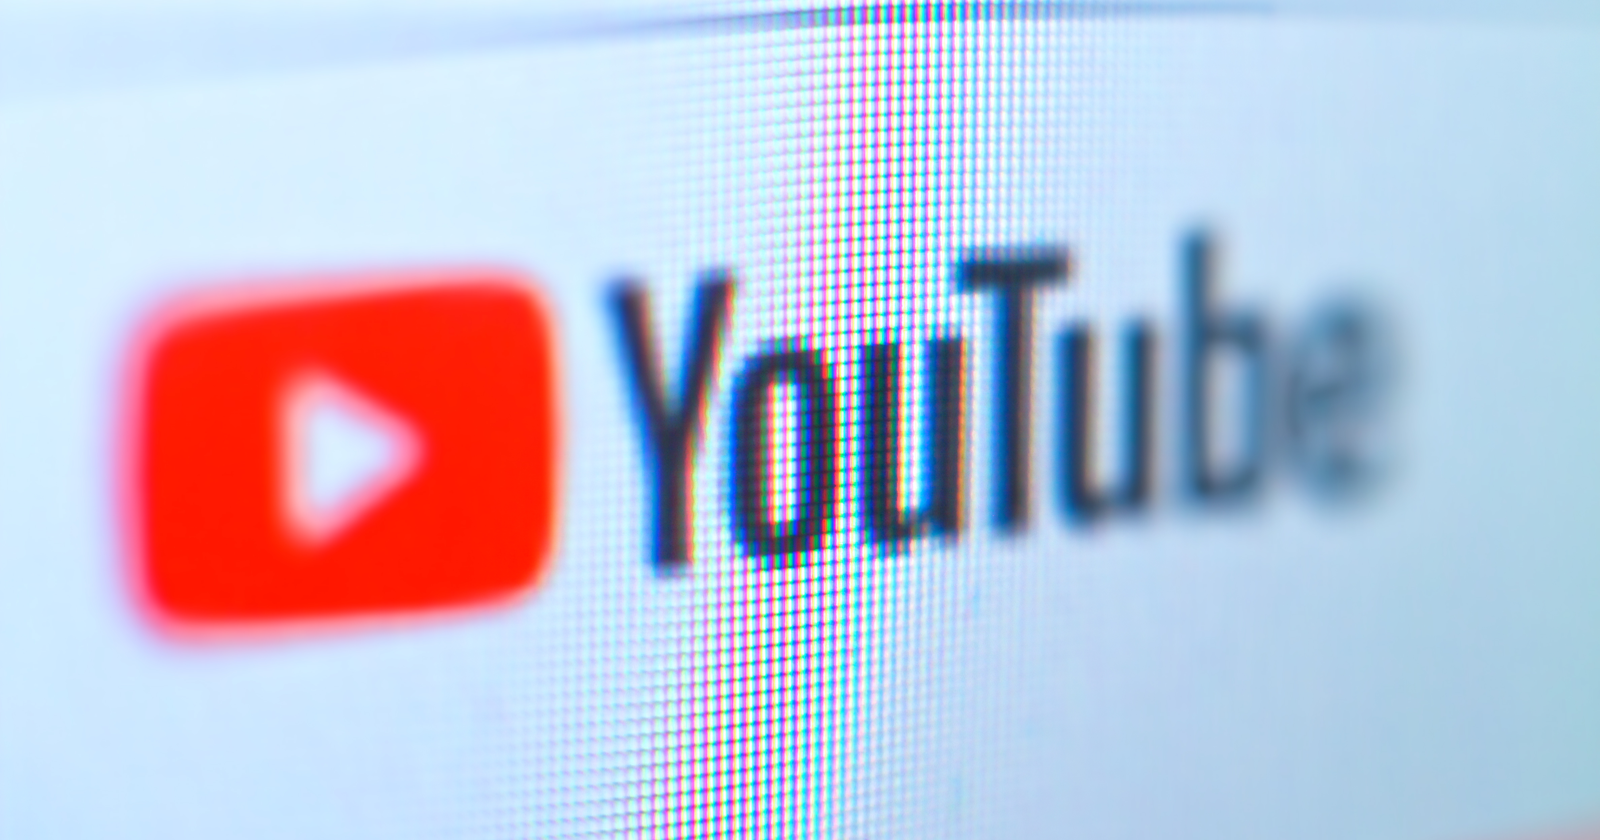 2019 S Top Youtube Searches And Channels So Far Search Engine